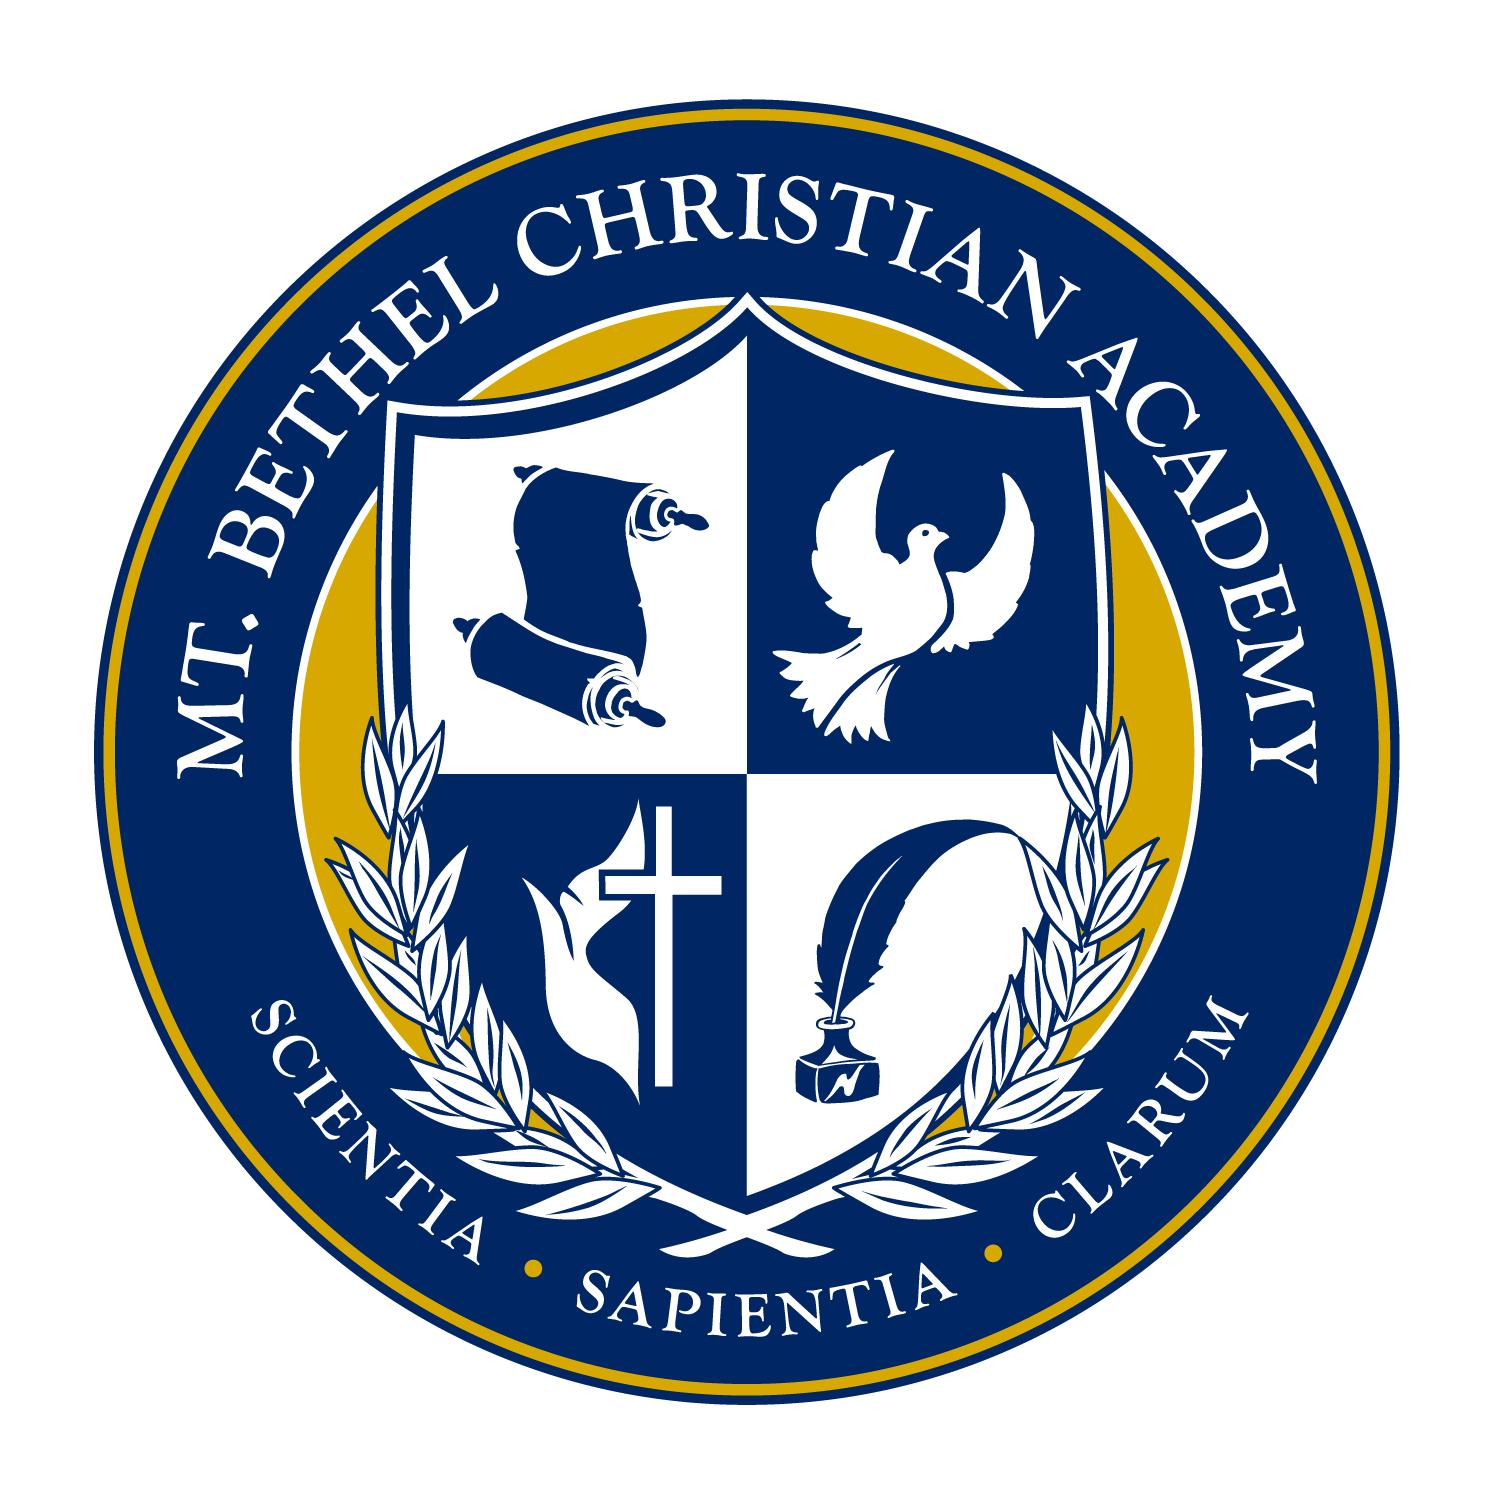 mount bethel single christian girls Leading seller of christian books, bibles, gifts, homeschool products, church supplies, dvds, toys and more everything christian for less for over 35 years.